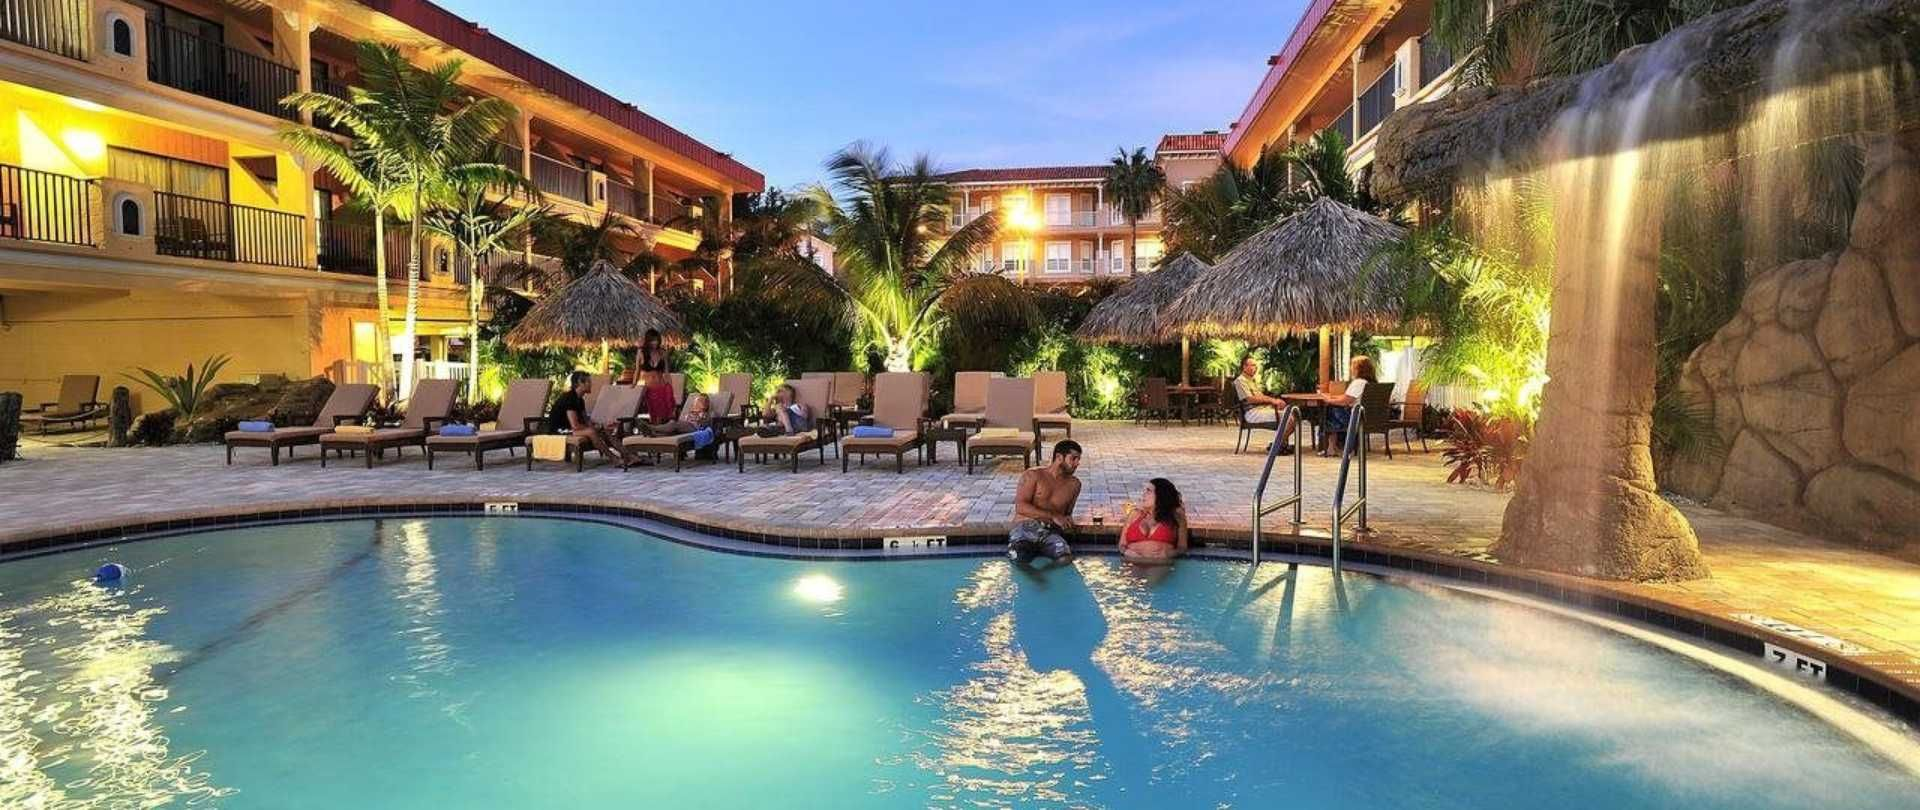 coconut cove all suite hotel clearwater beach united states of